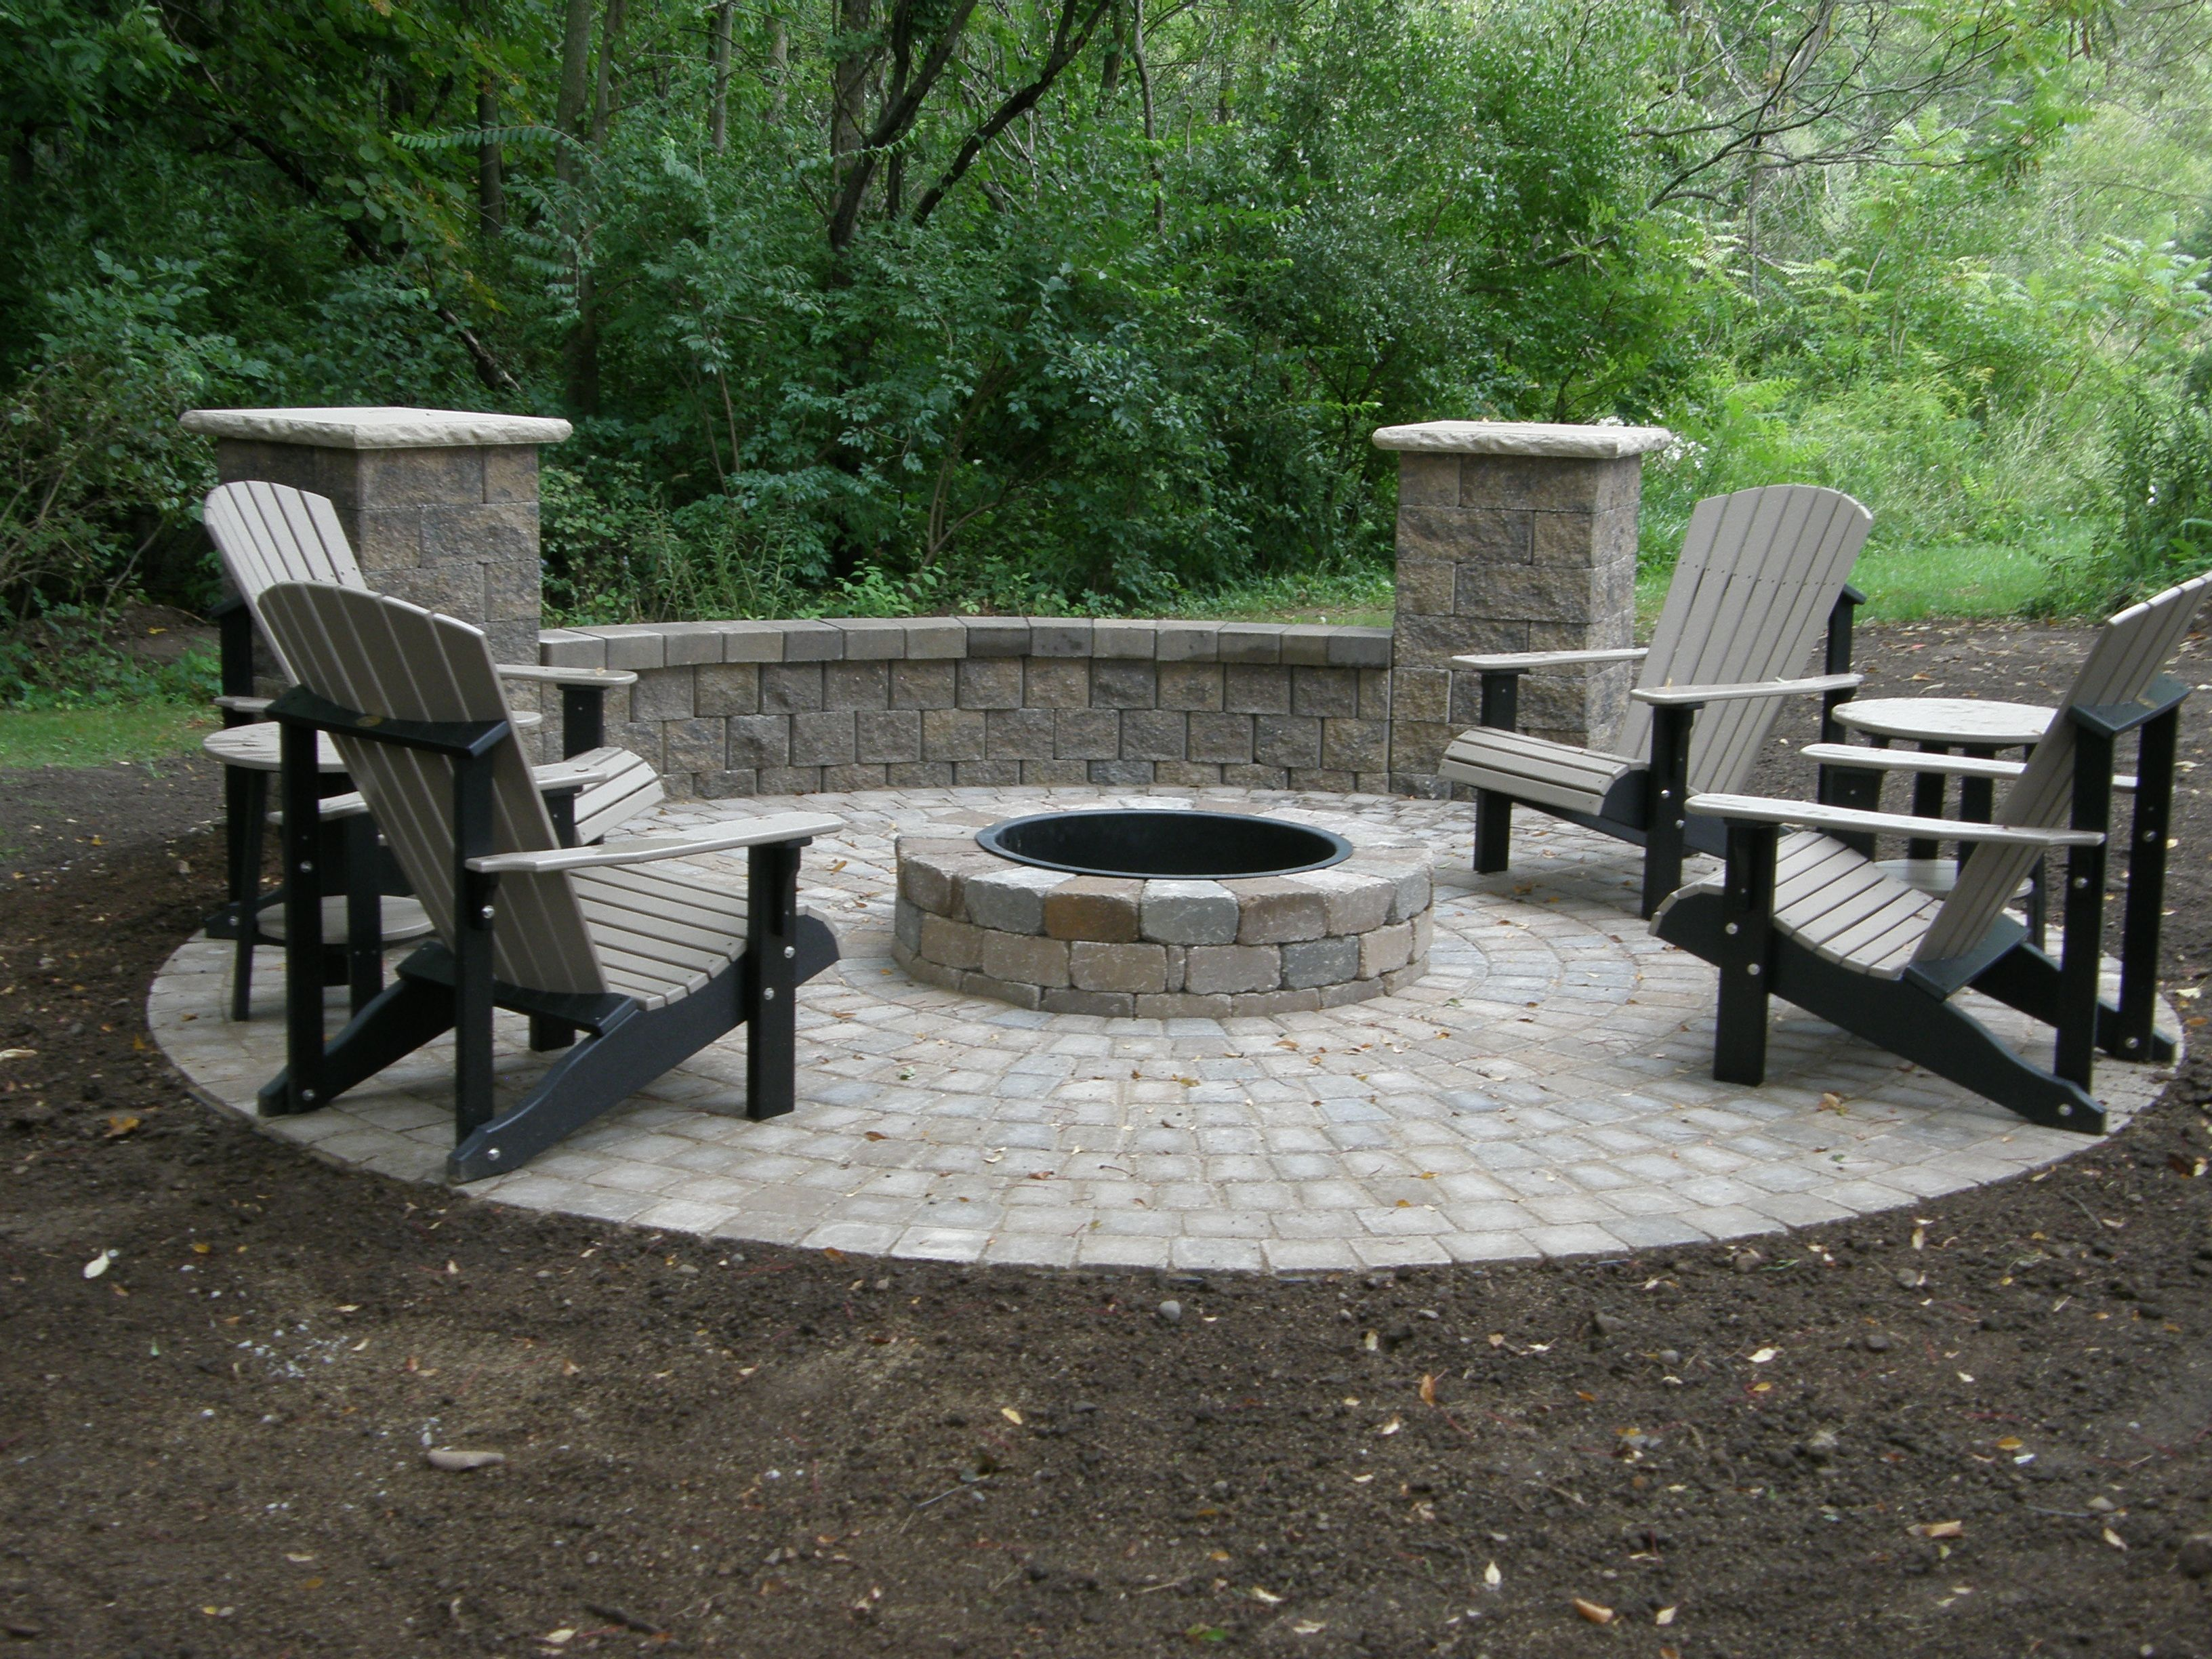 Inspiration Gray Stained Adarondack Chairs And Bench Around Our Fire Pit